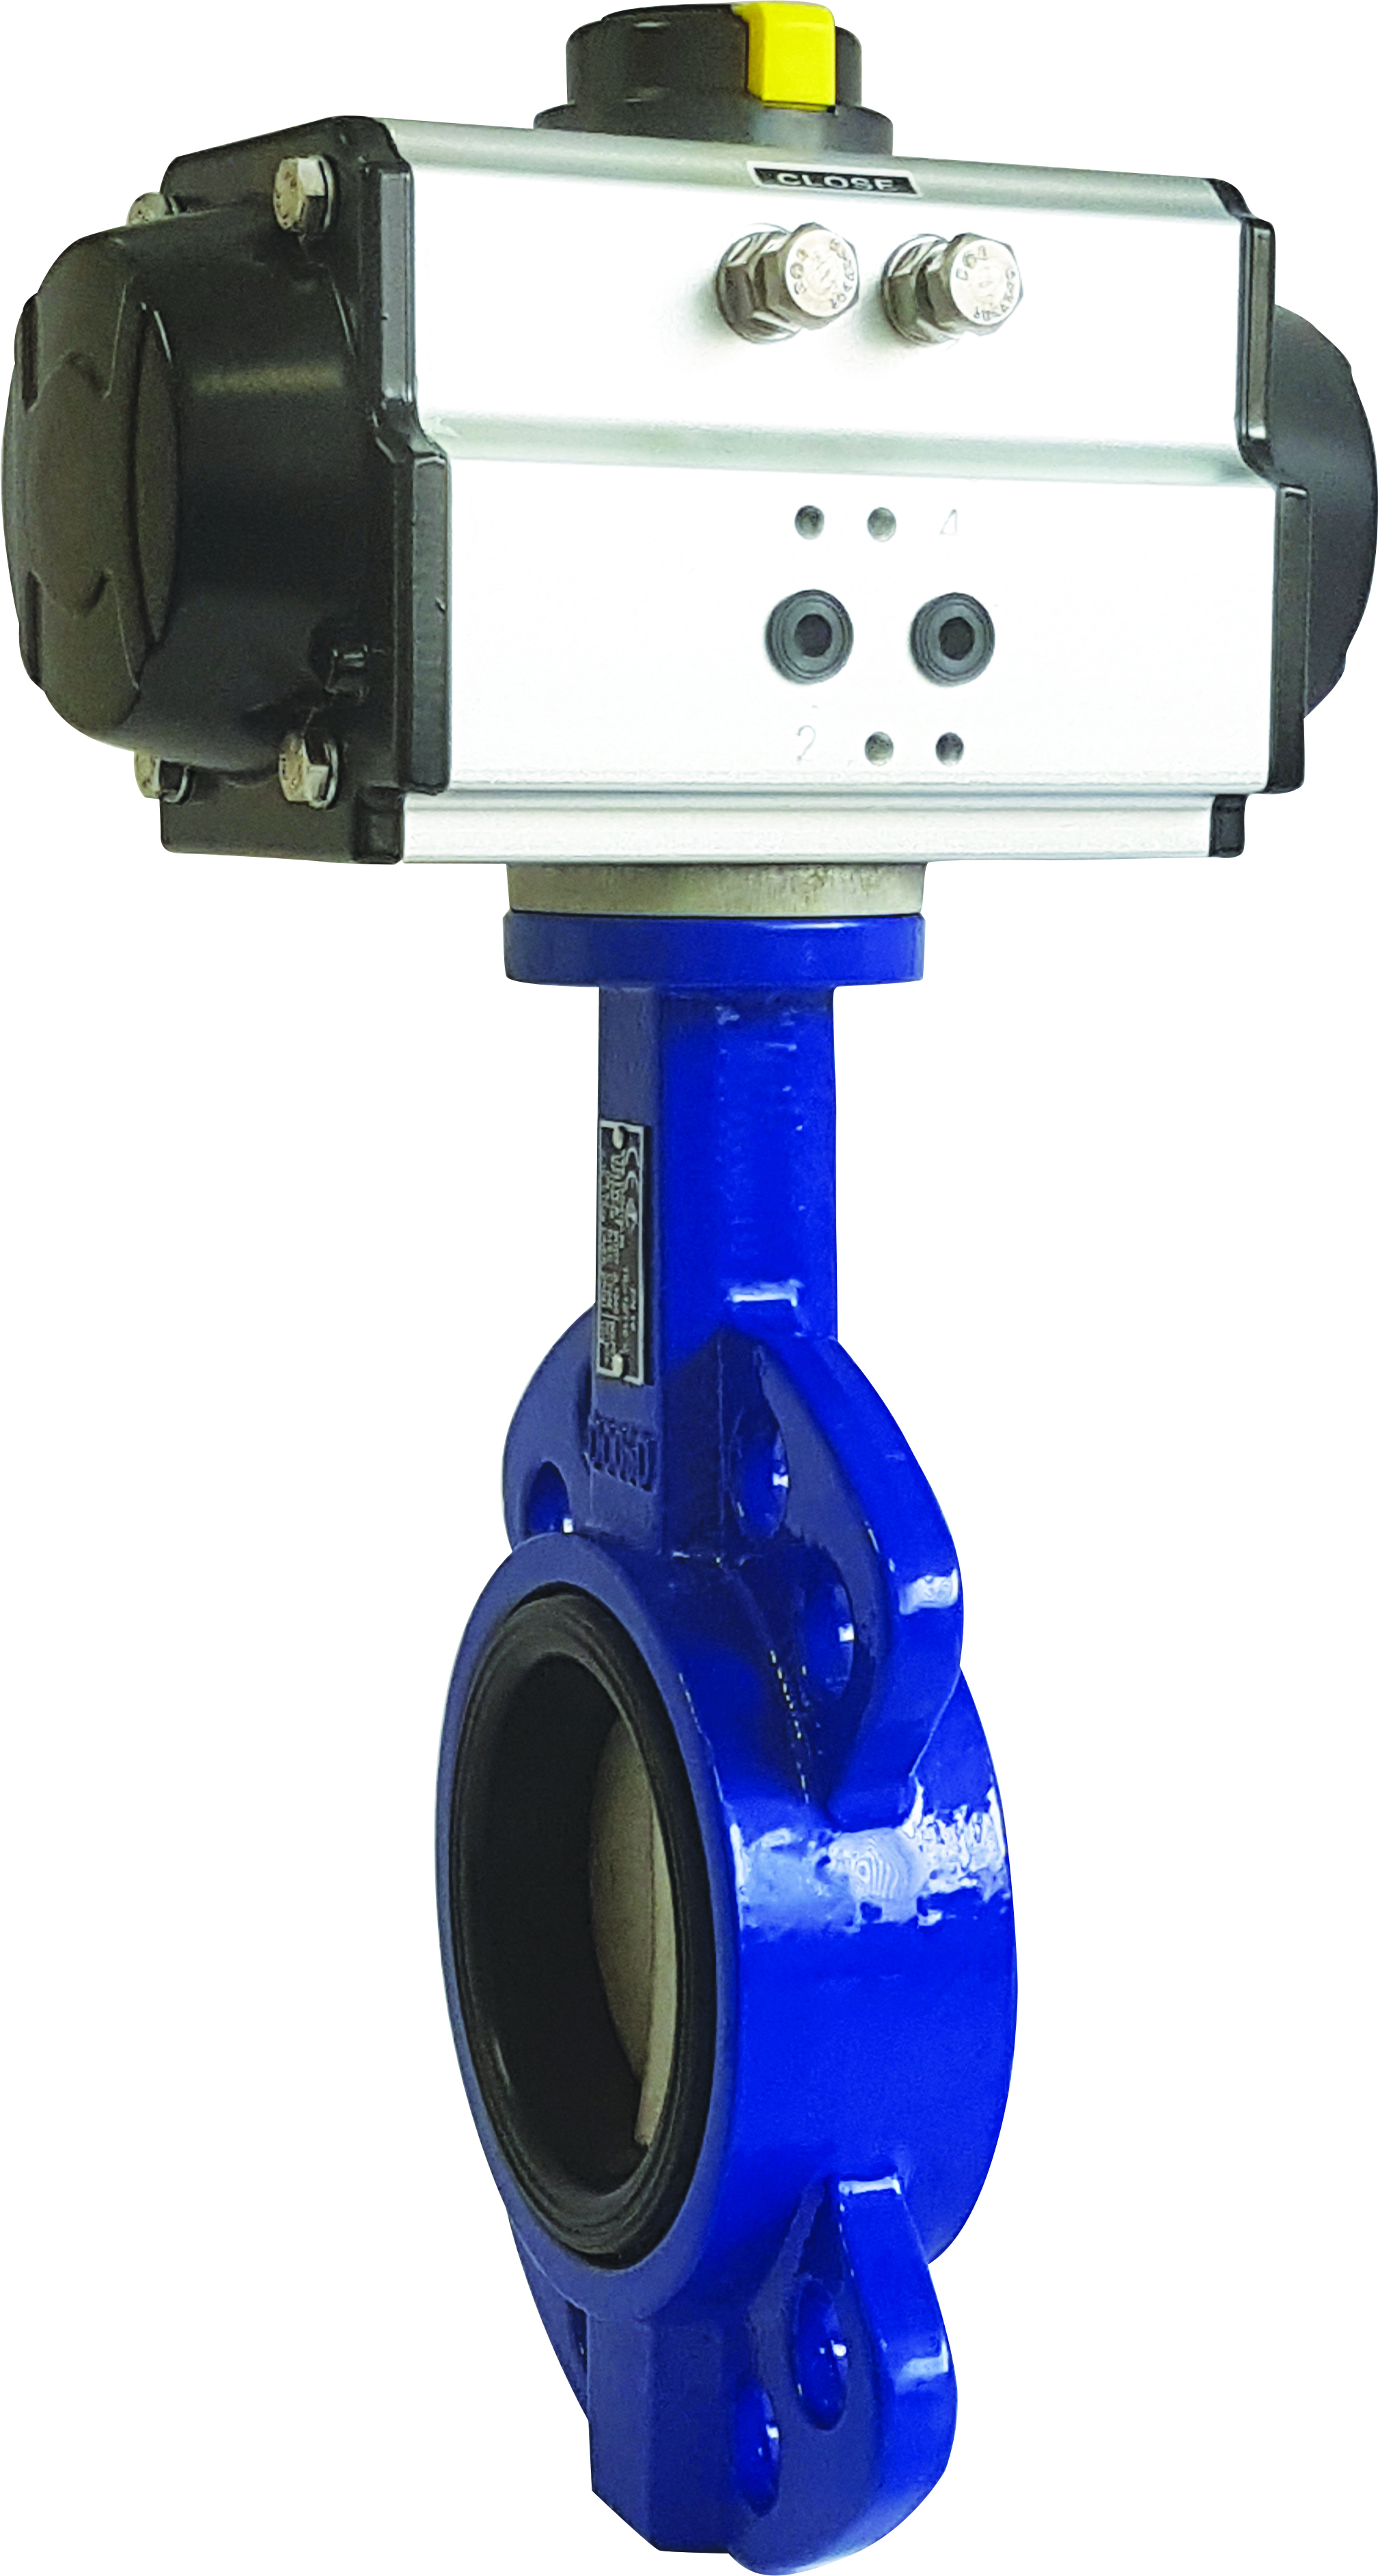 Actuated Valves | Alma Valves